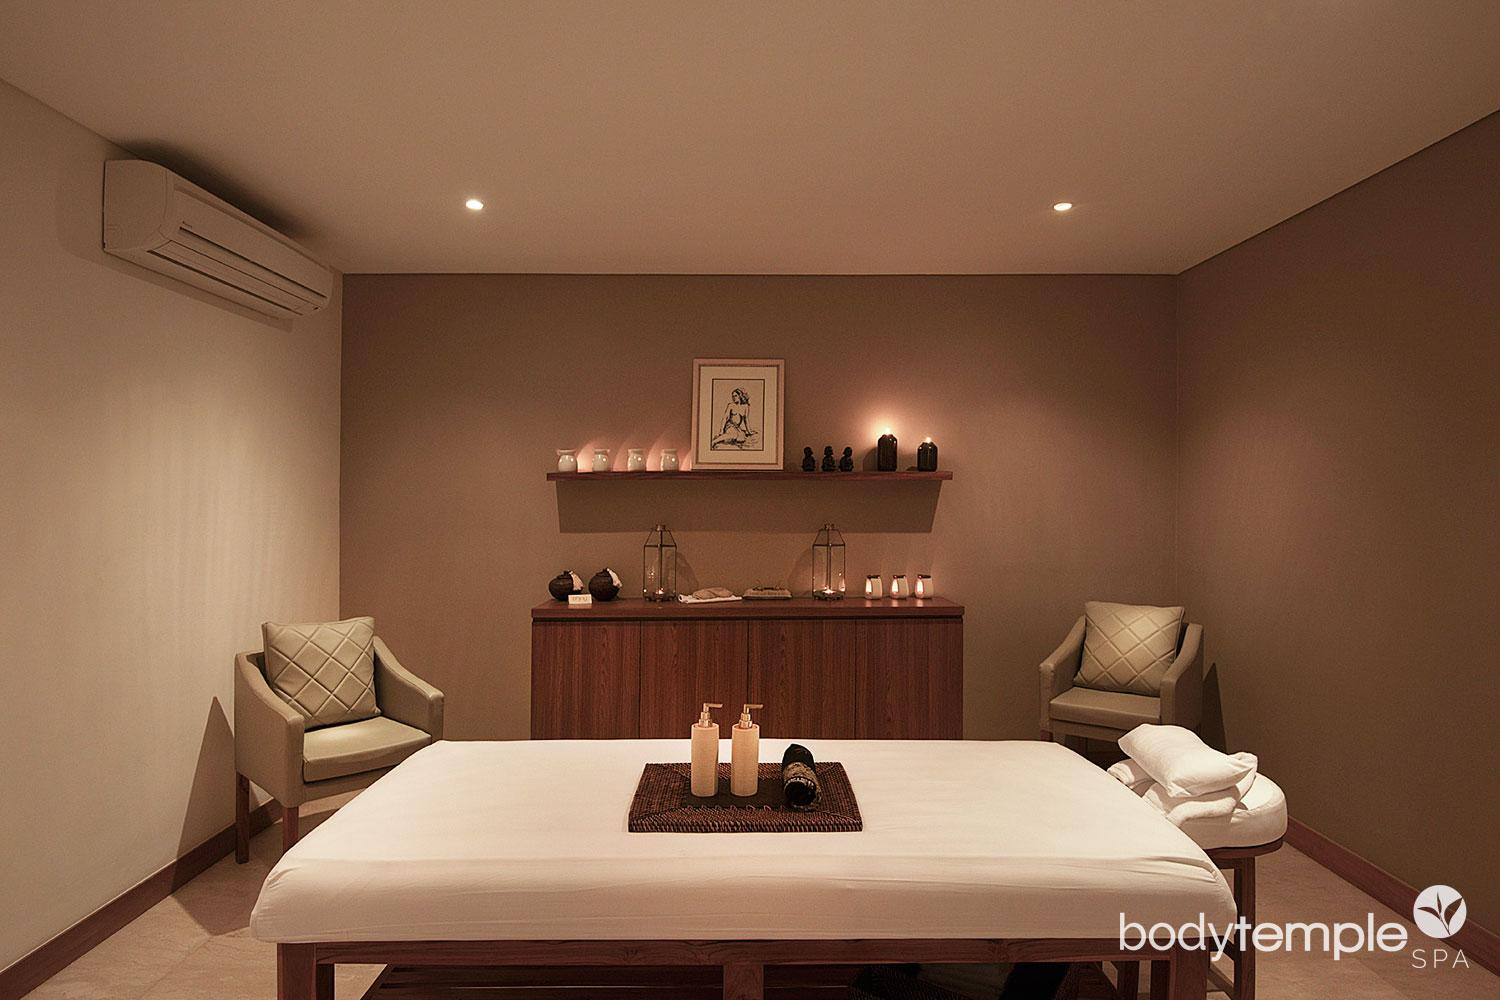 Body Temple Spa Bali